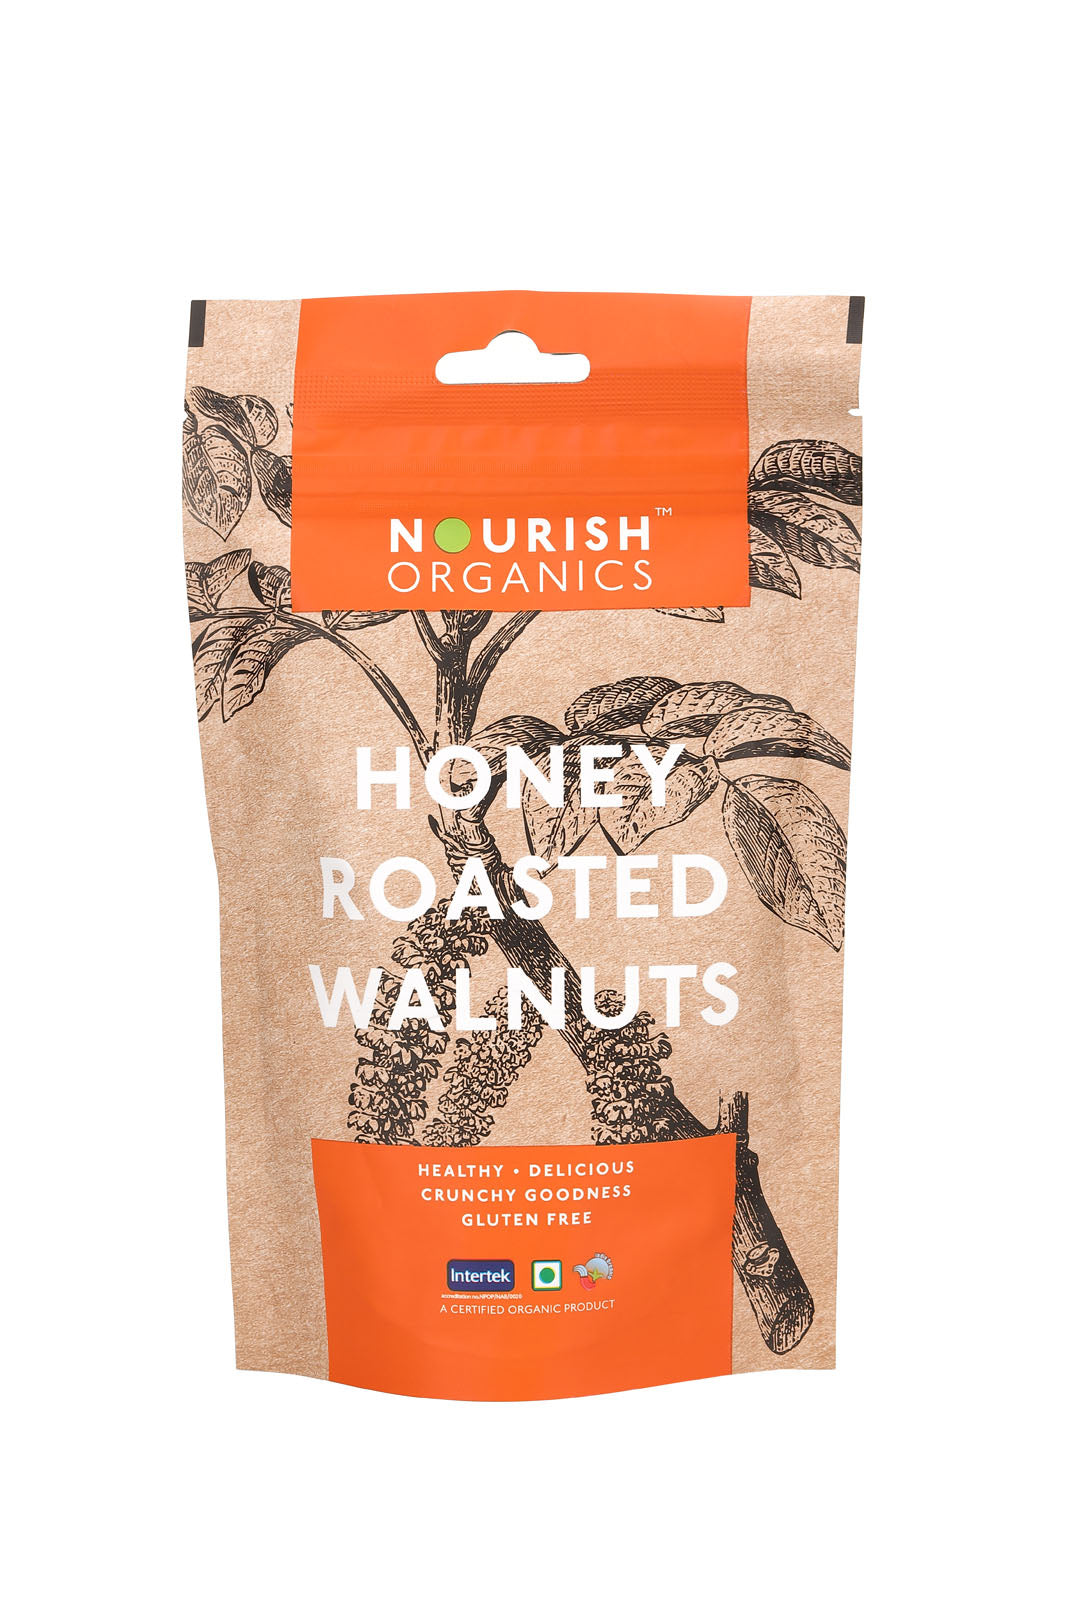 Nourish Organics - Honey Roasted Walnuts 100g